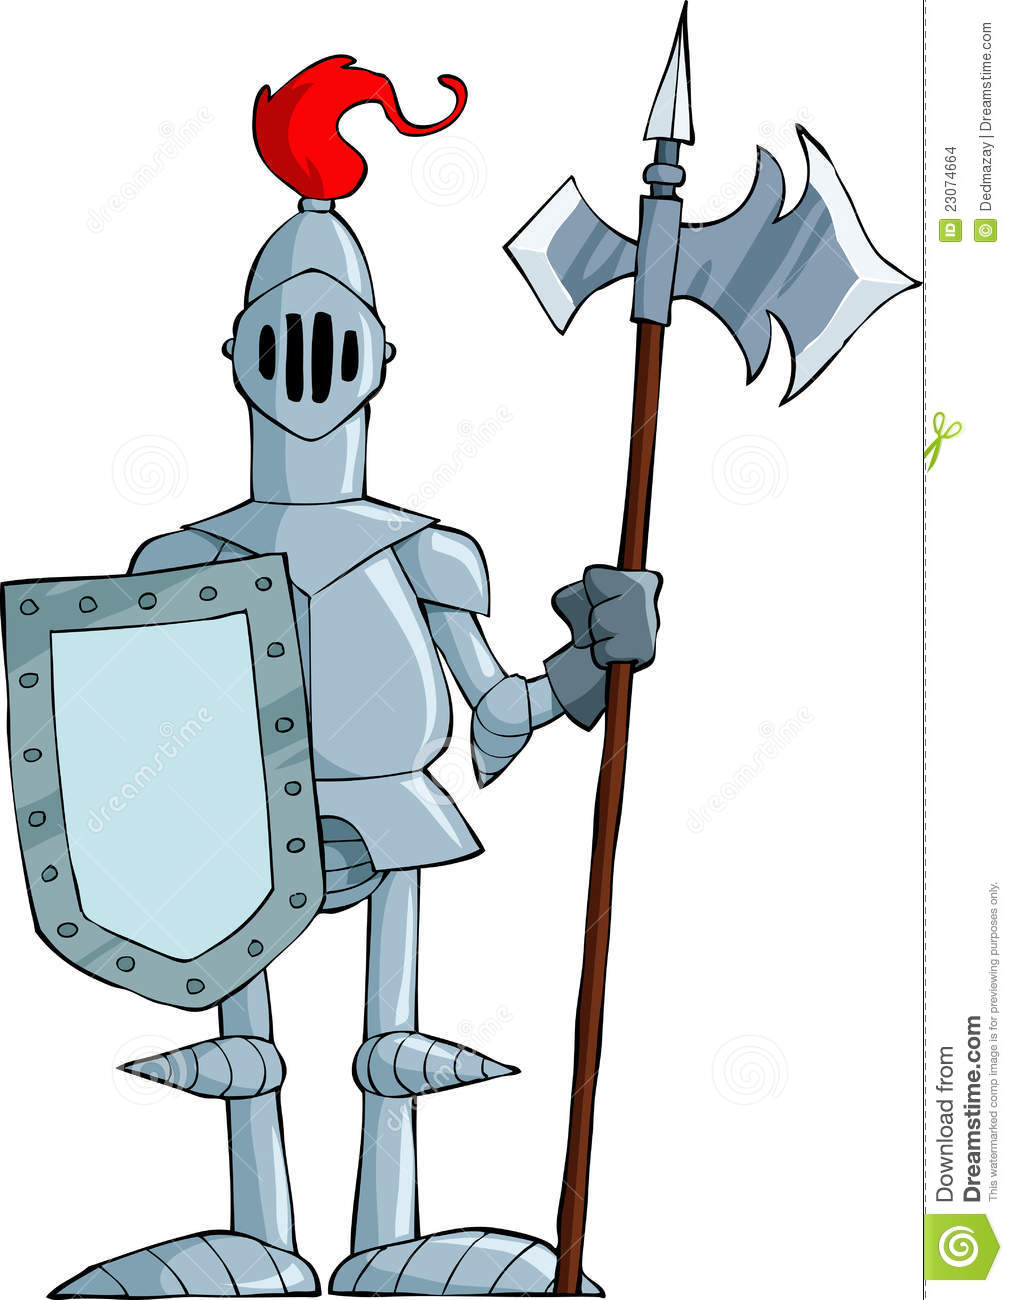 Cartoon knight stock vector. Illustration of knight, guard ...